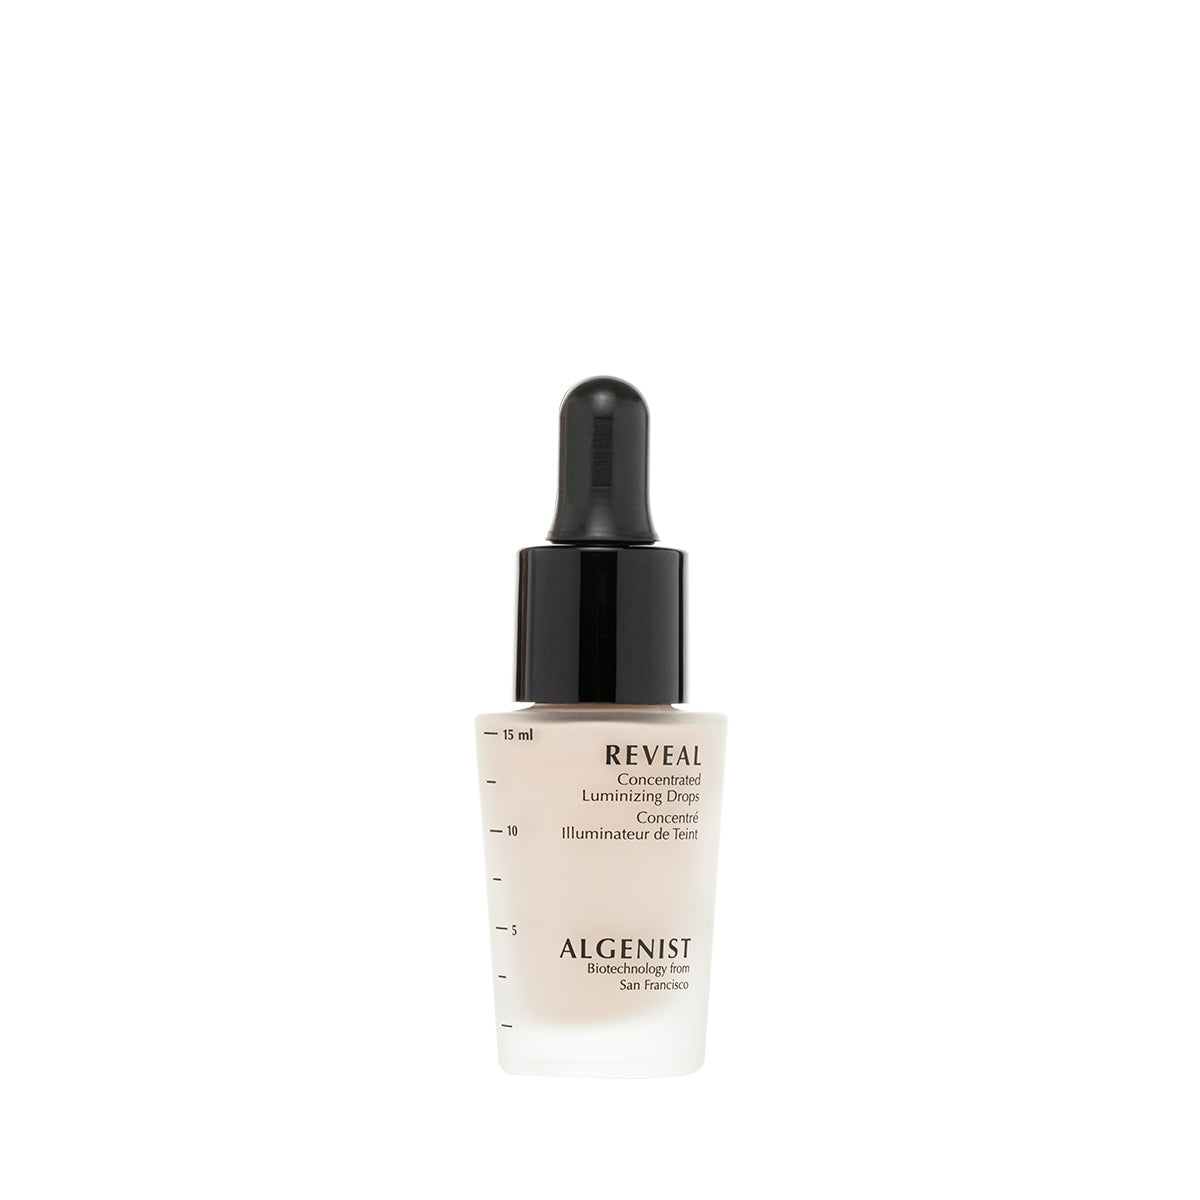 algenist - reveal concentrated luminizing drops, pearl